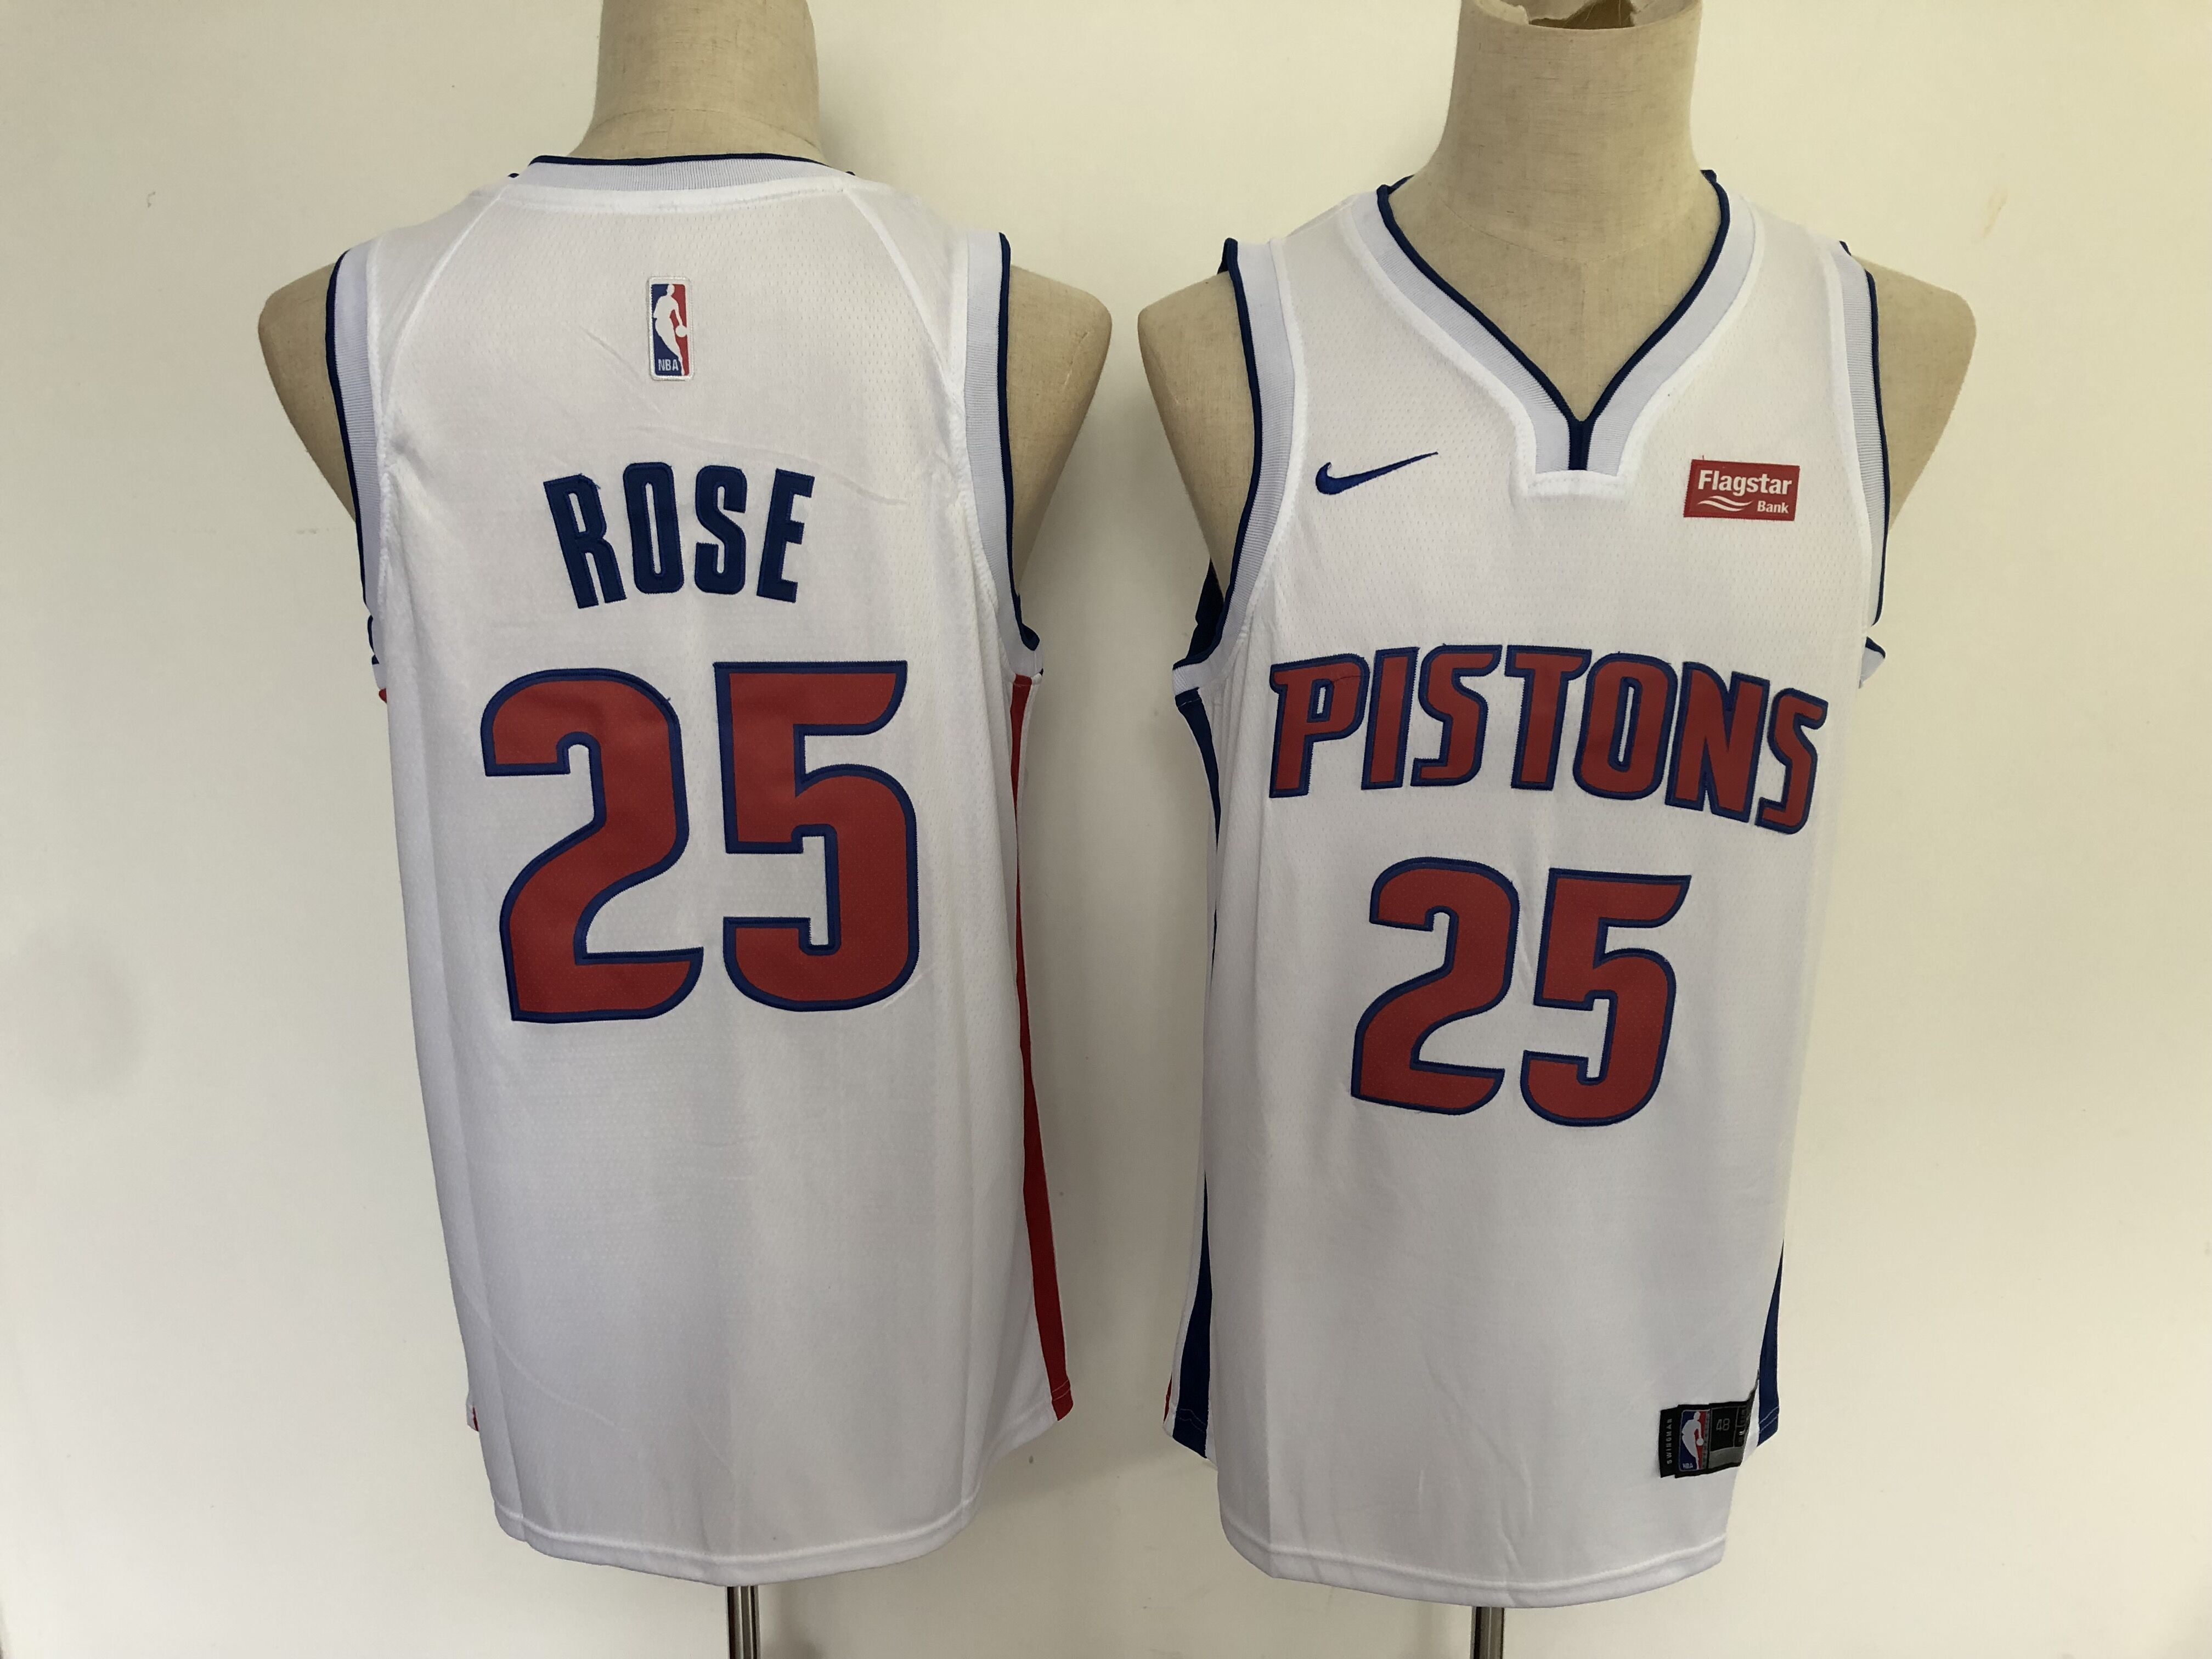 Men Detroit Pistons 25 Rose White Nike Game NBA Jerseys